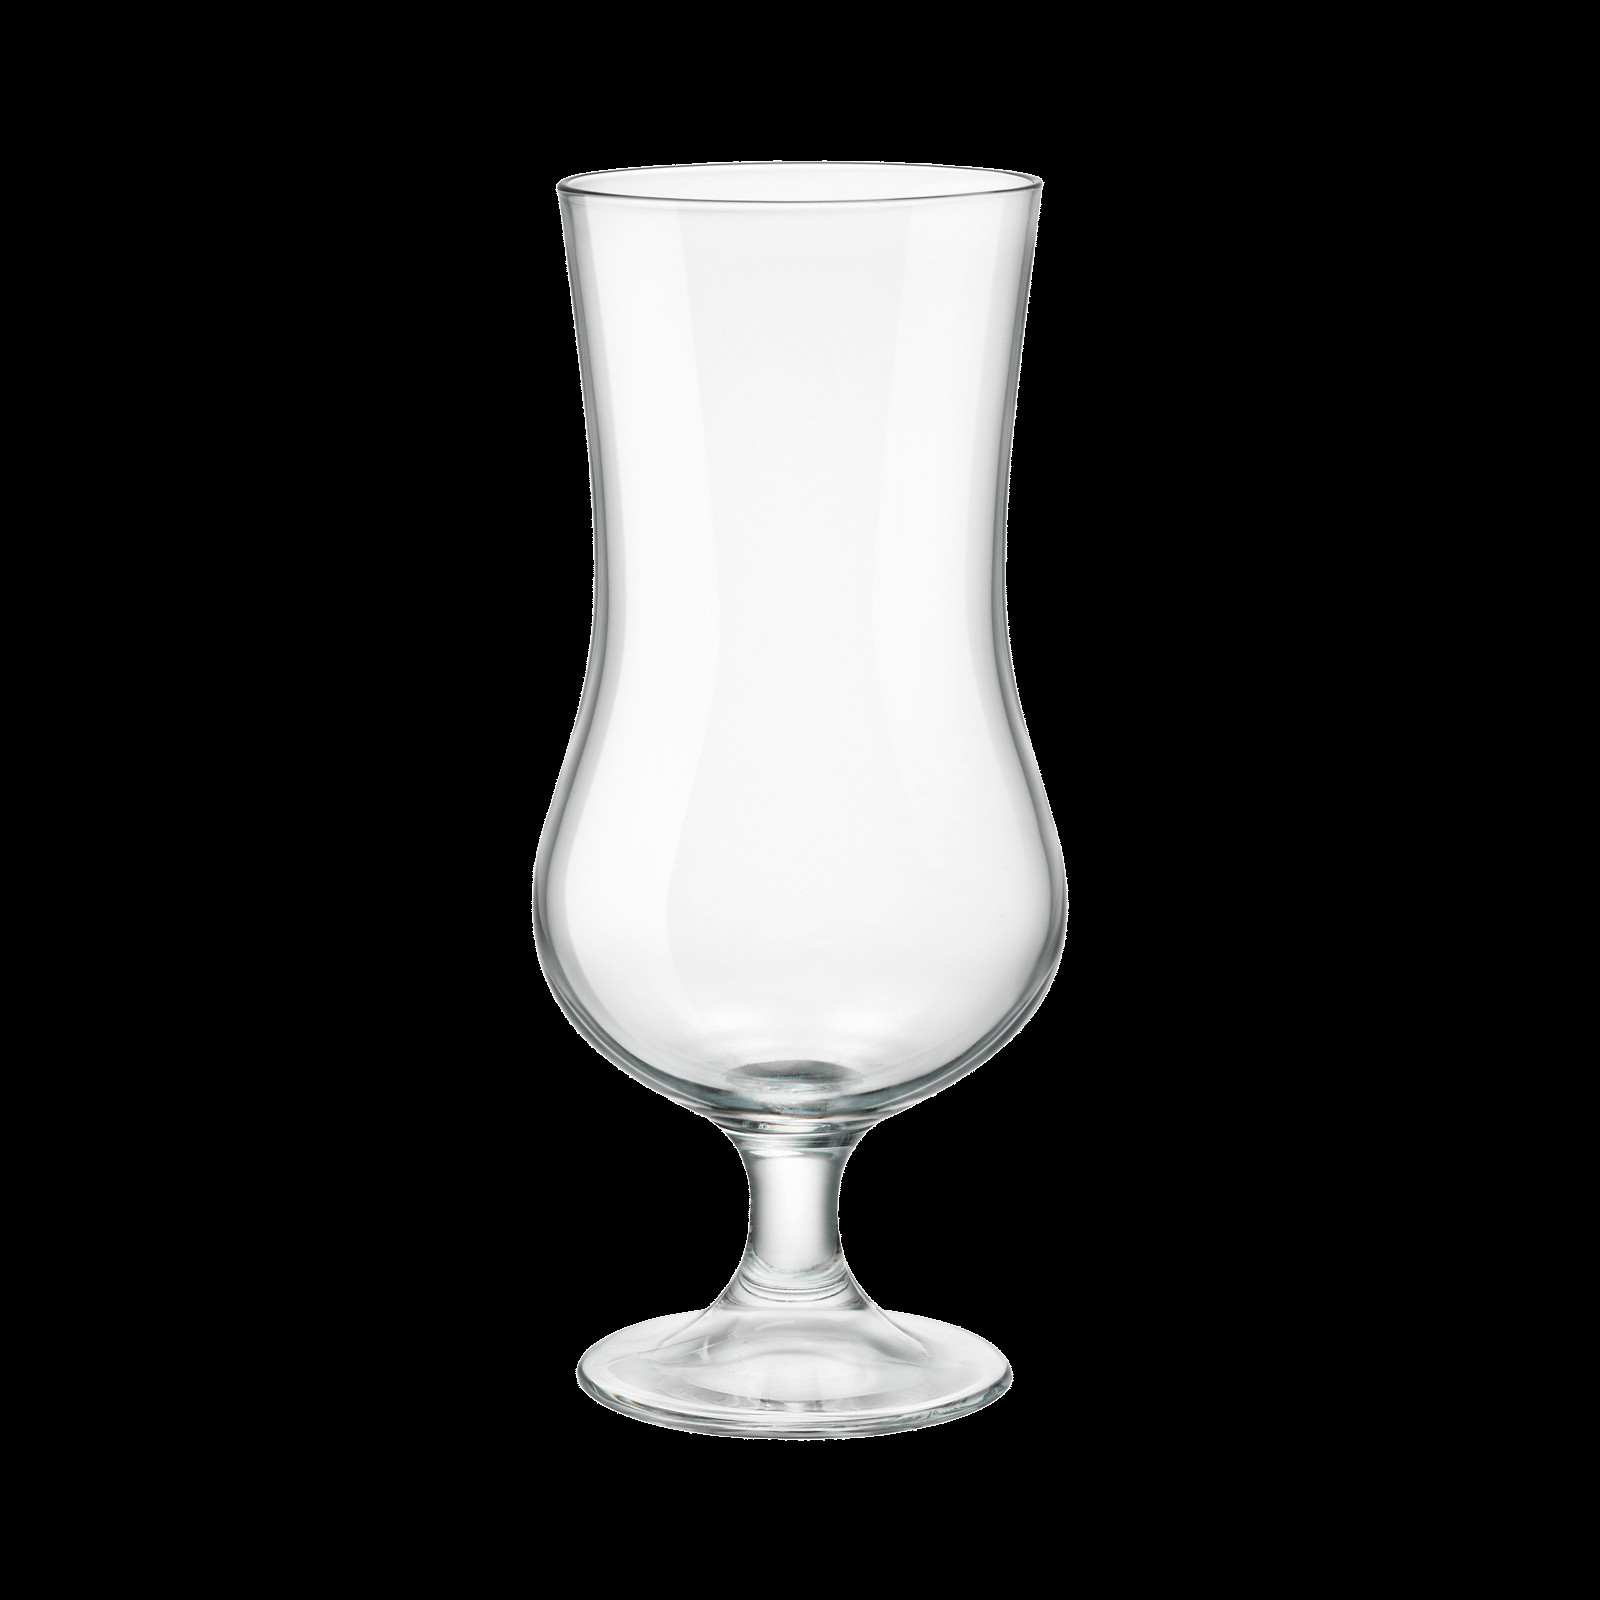 4 feet tall glass vases of archivi products bormioli rocco within large beer glass